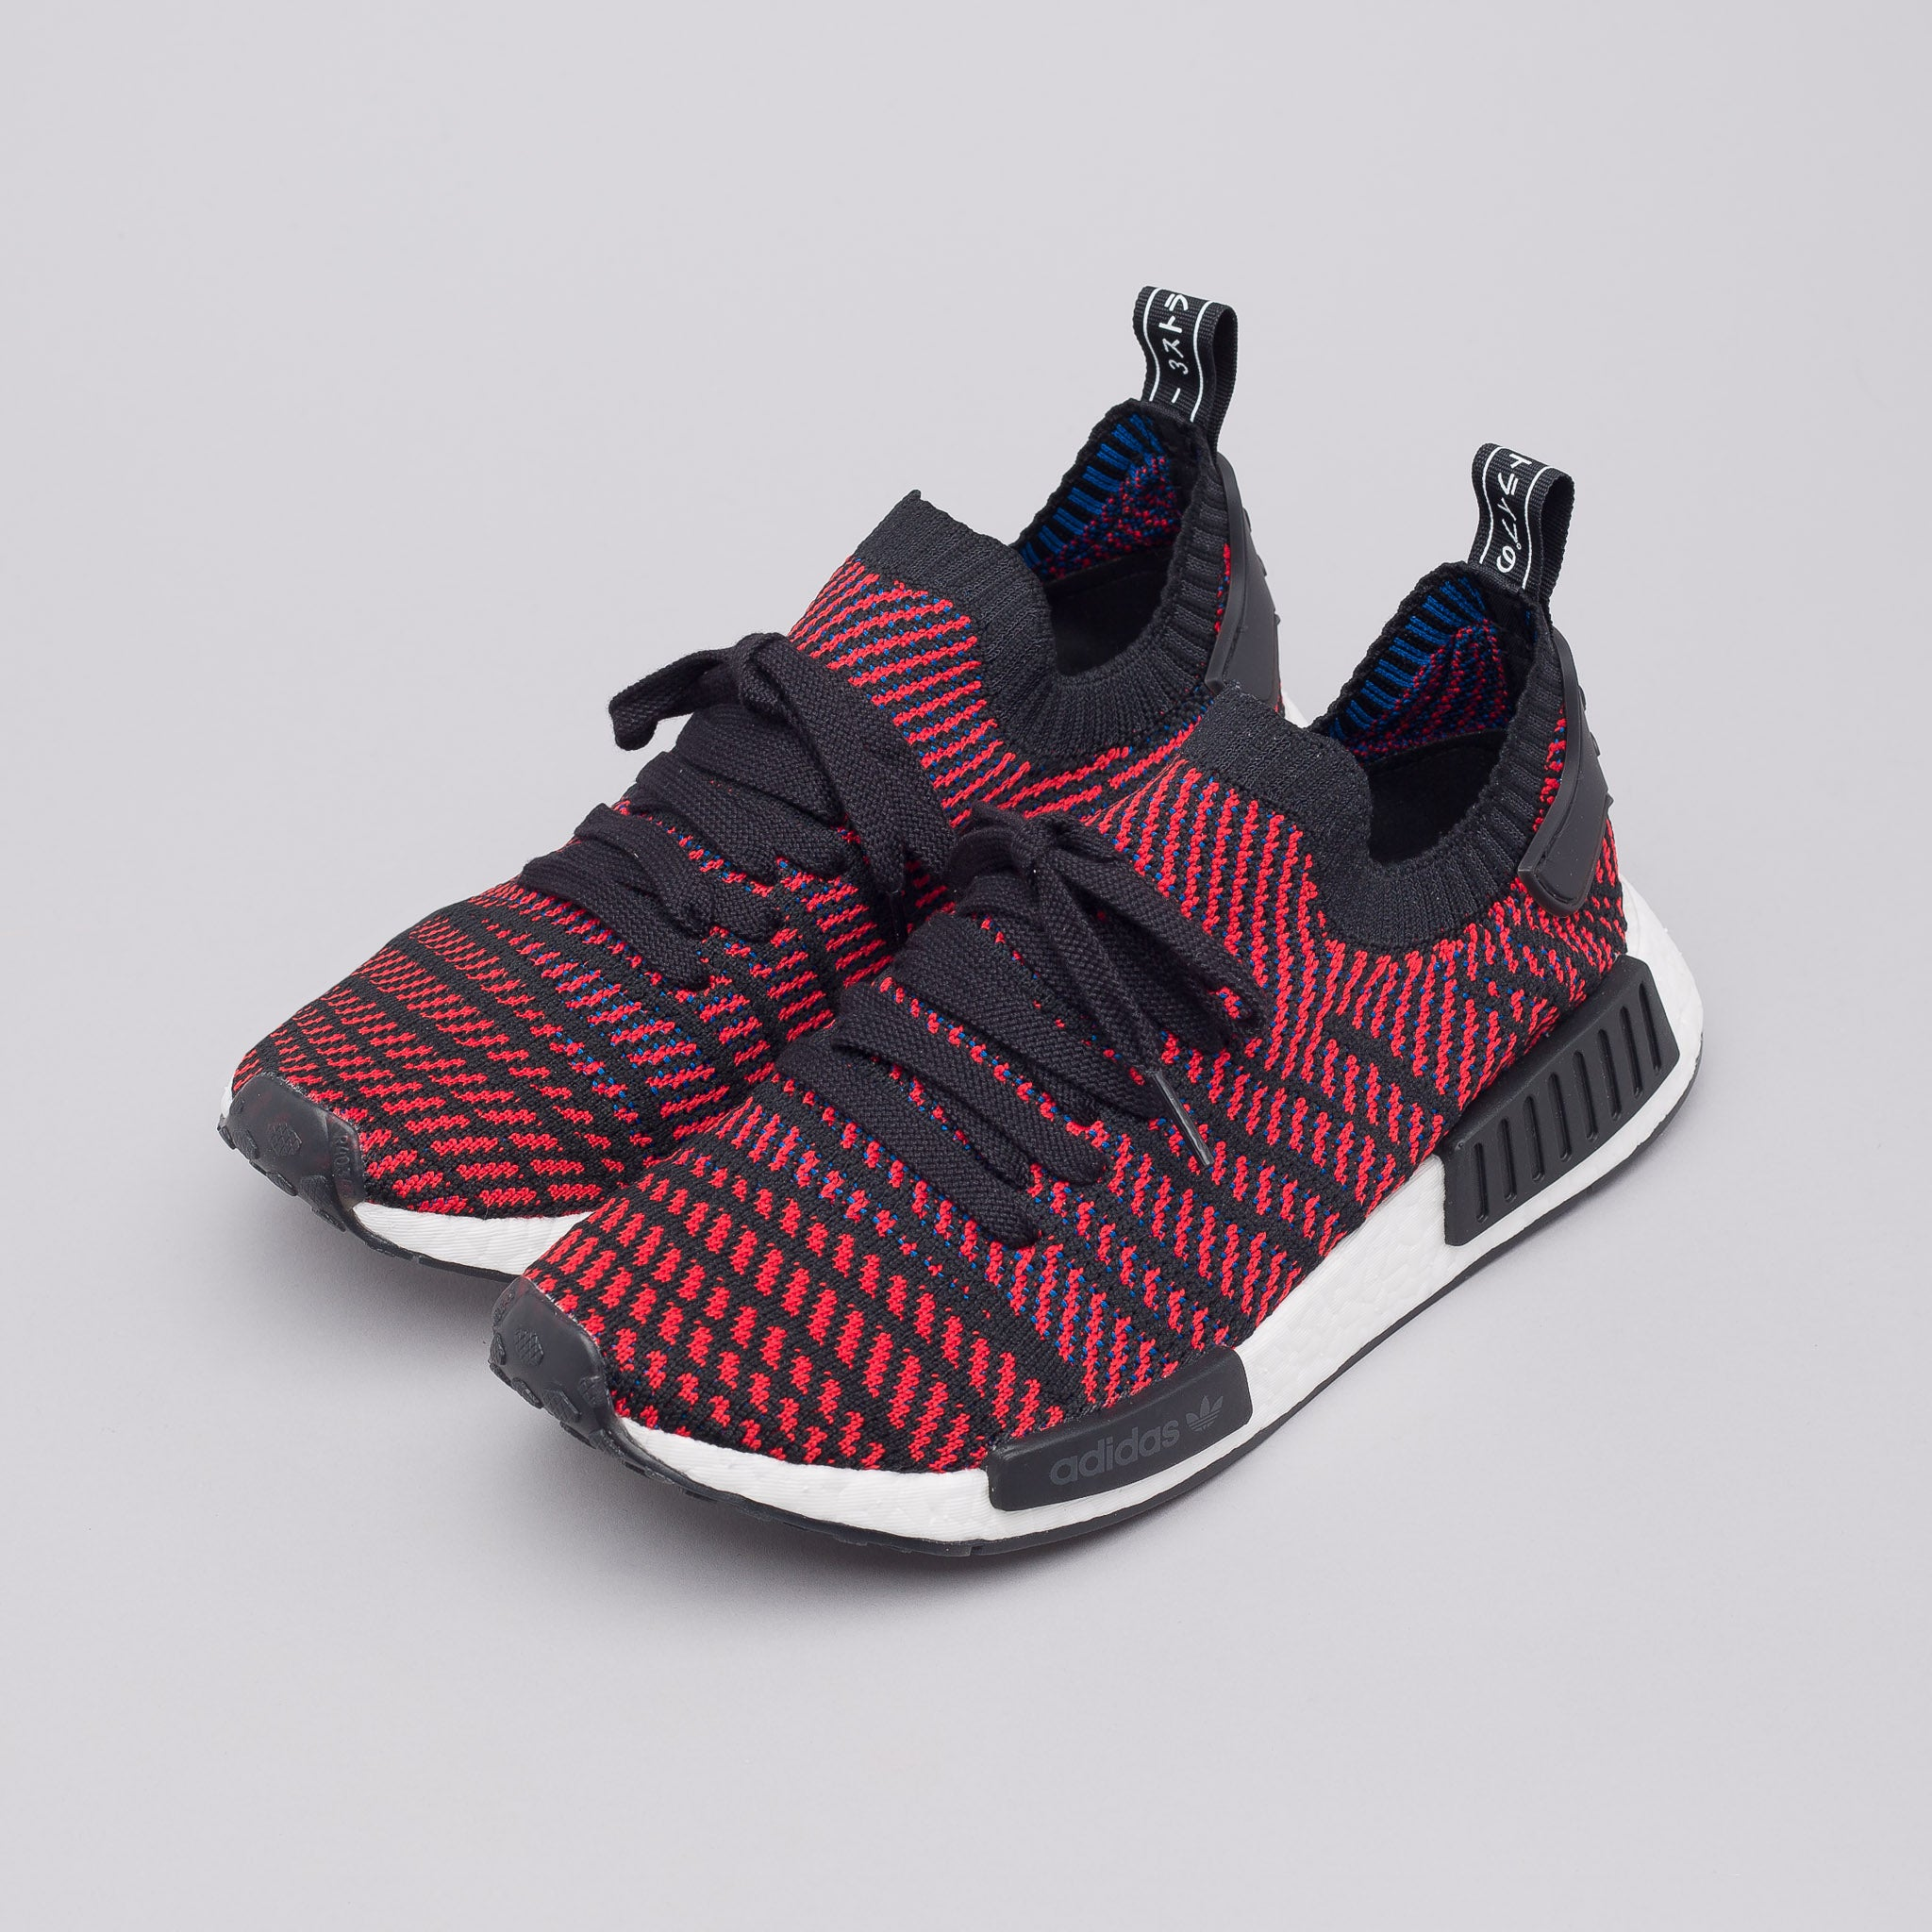 adidas nmd r1 bape Australia Free Local Classifieds